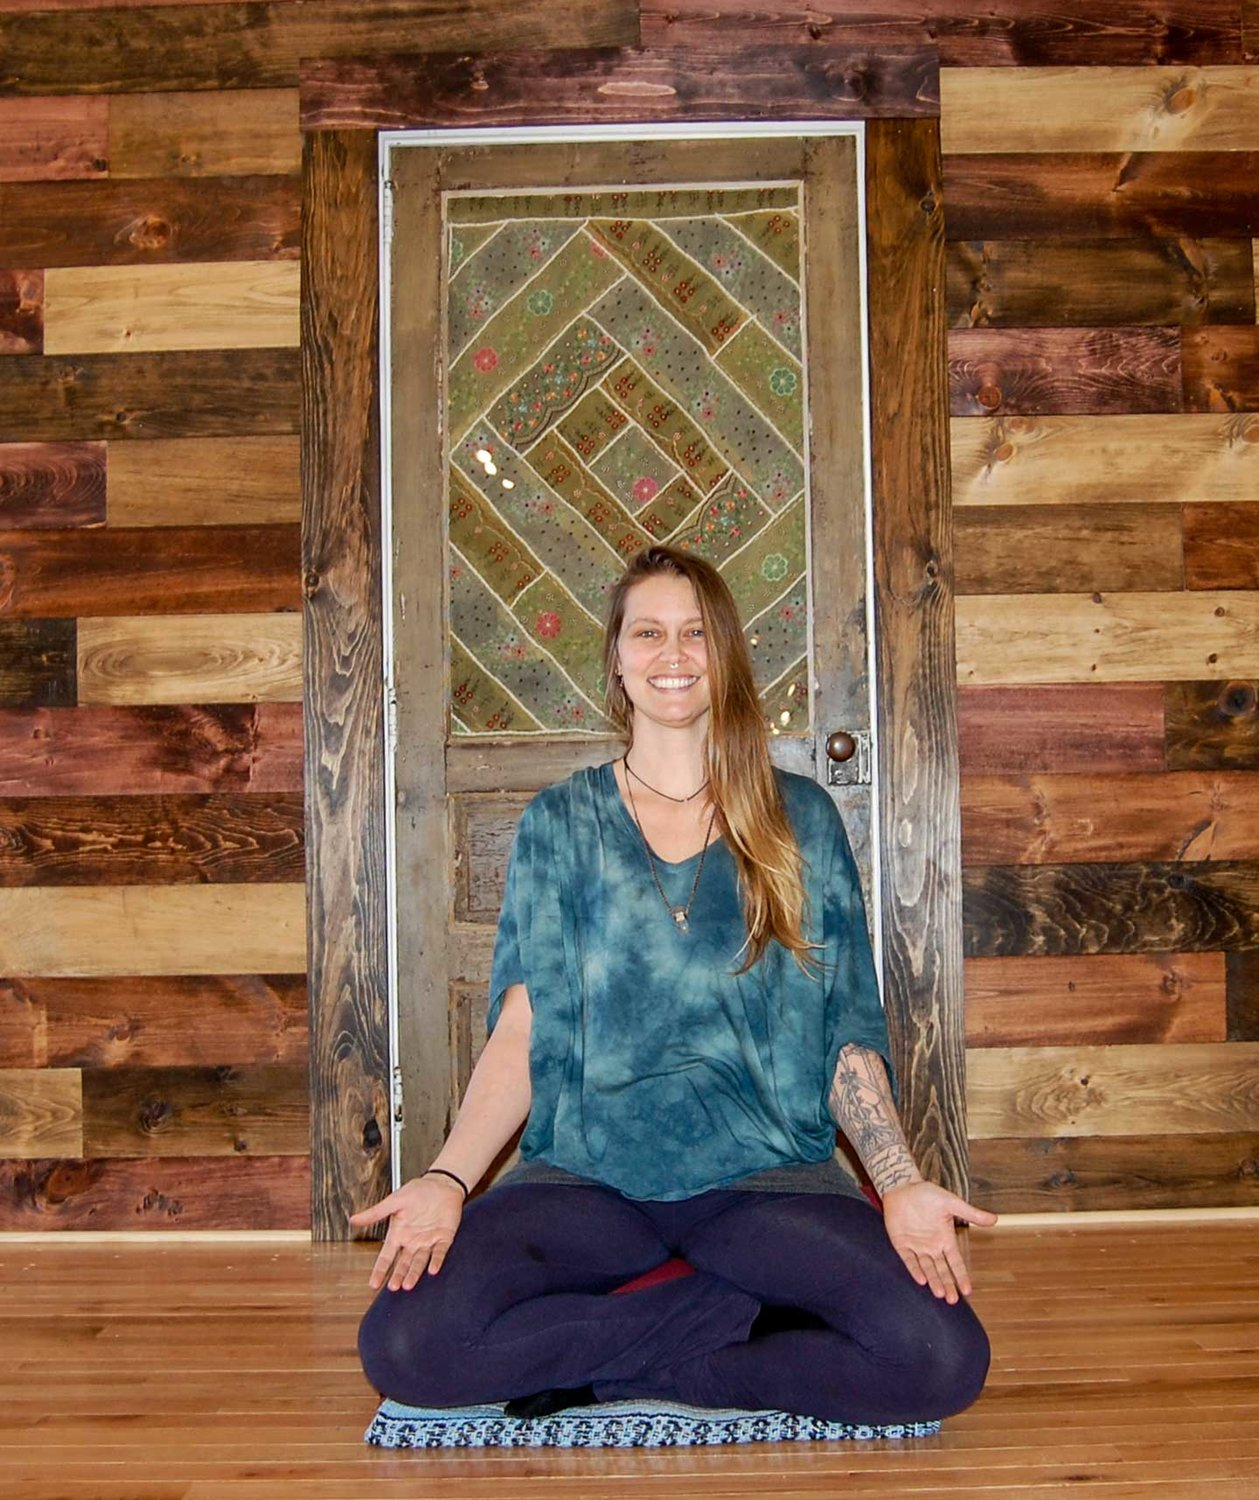 TRR photos by Jonathan Charles Fox